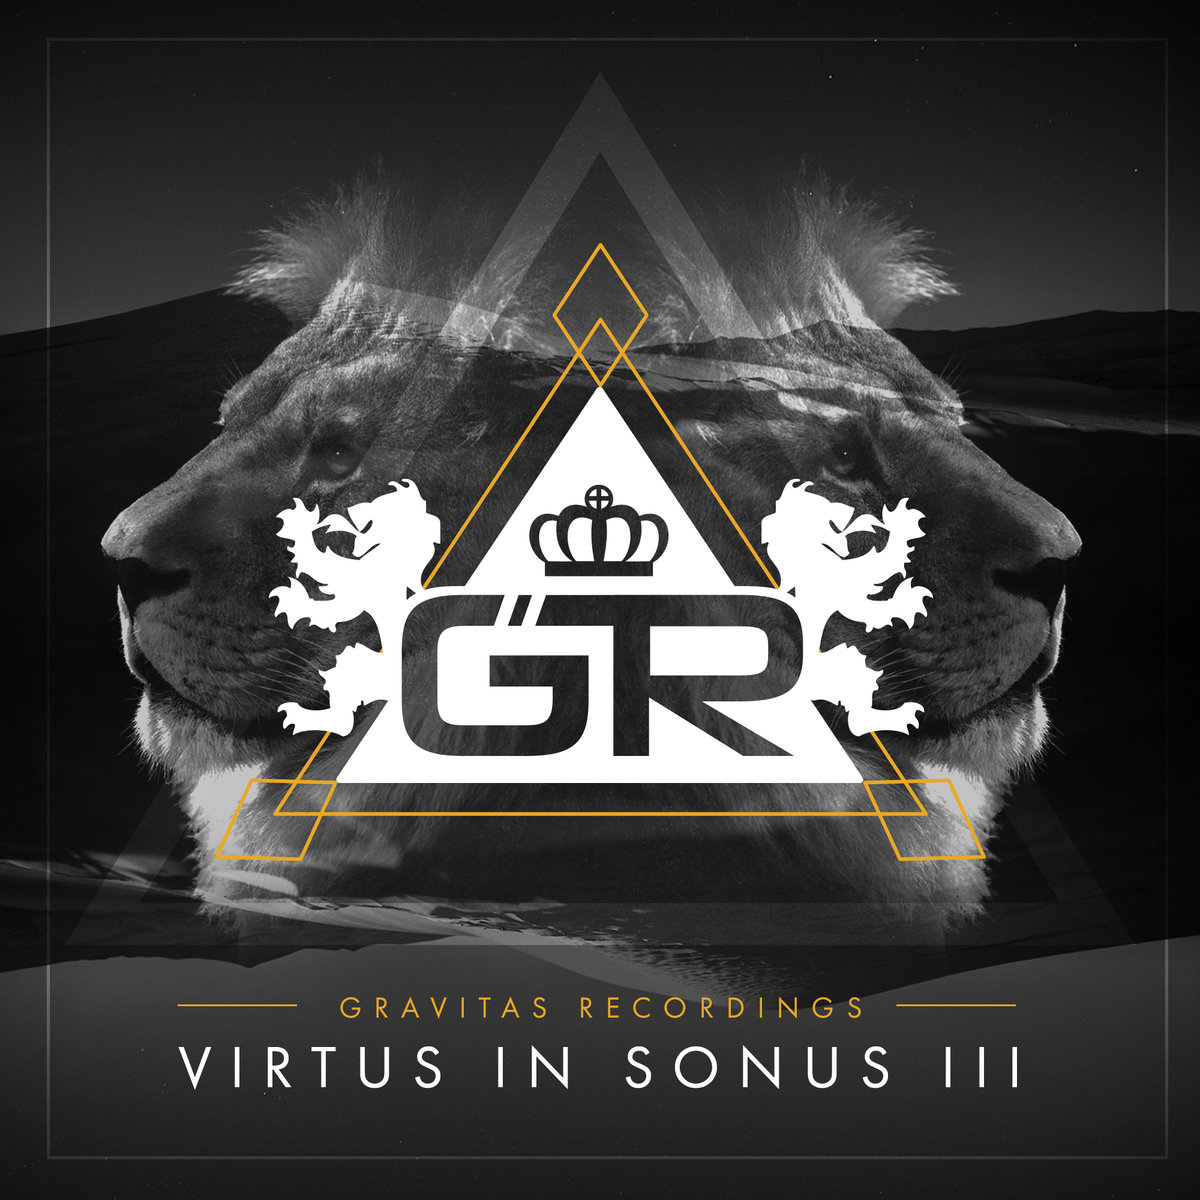 The Digital Connection - Sahara @ 'Virtus In Sonus III' album (Austin)